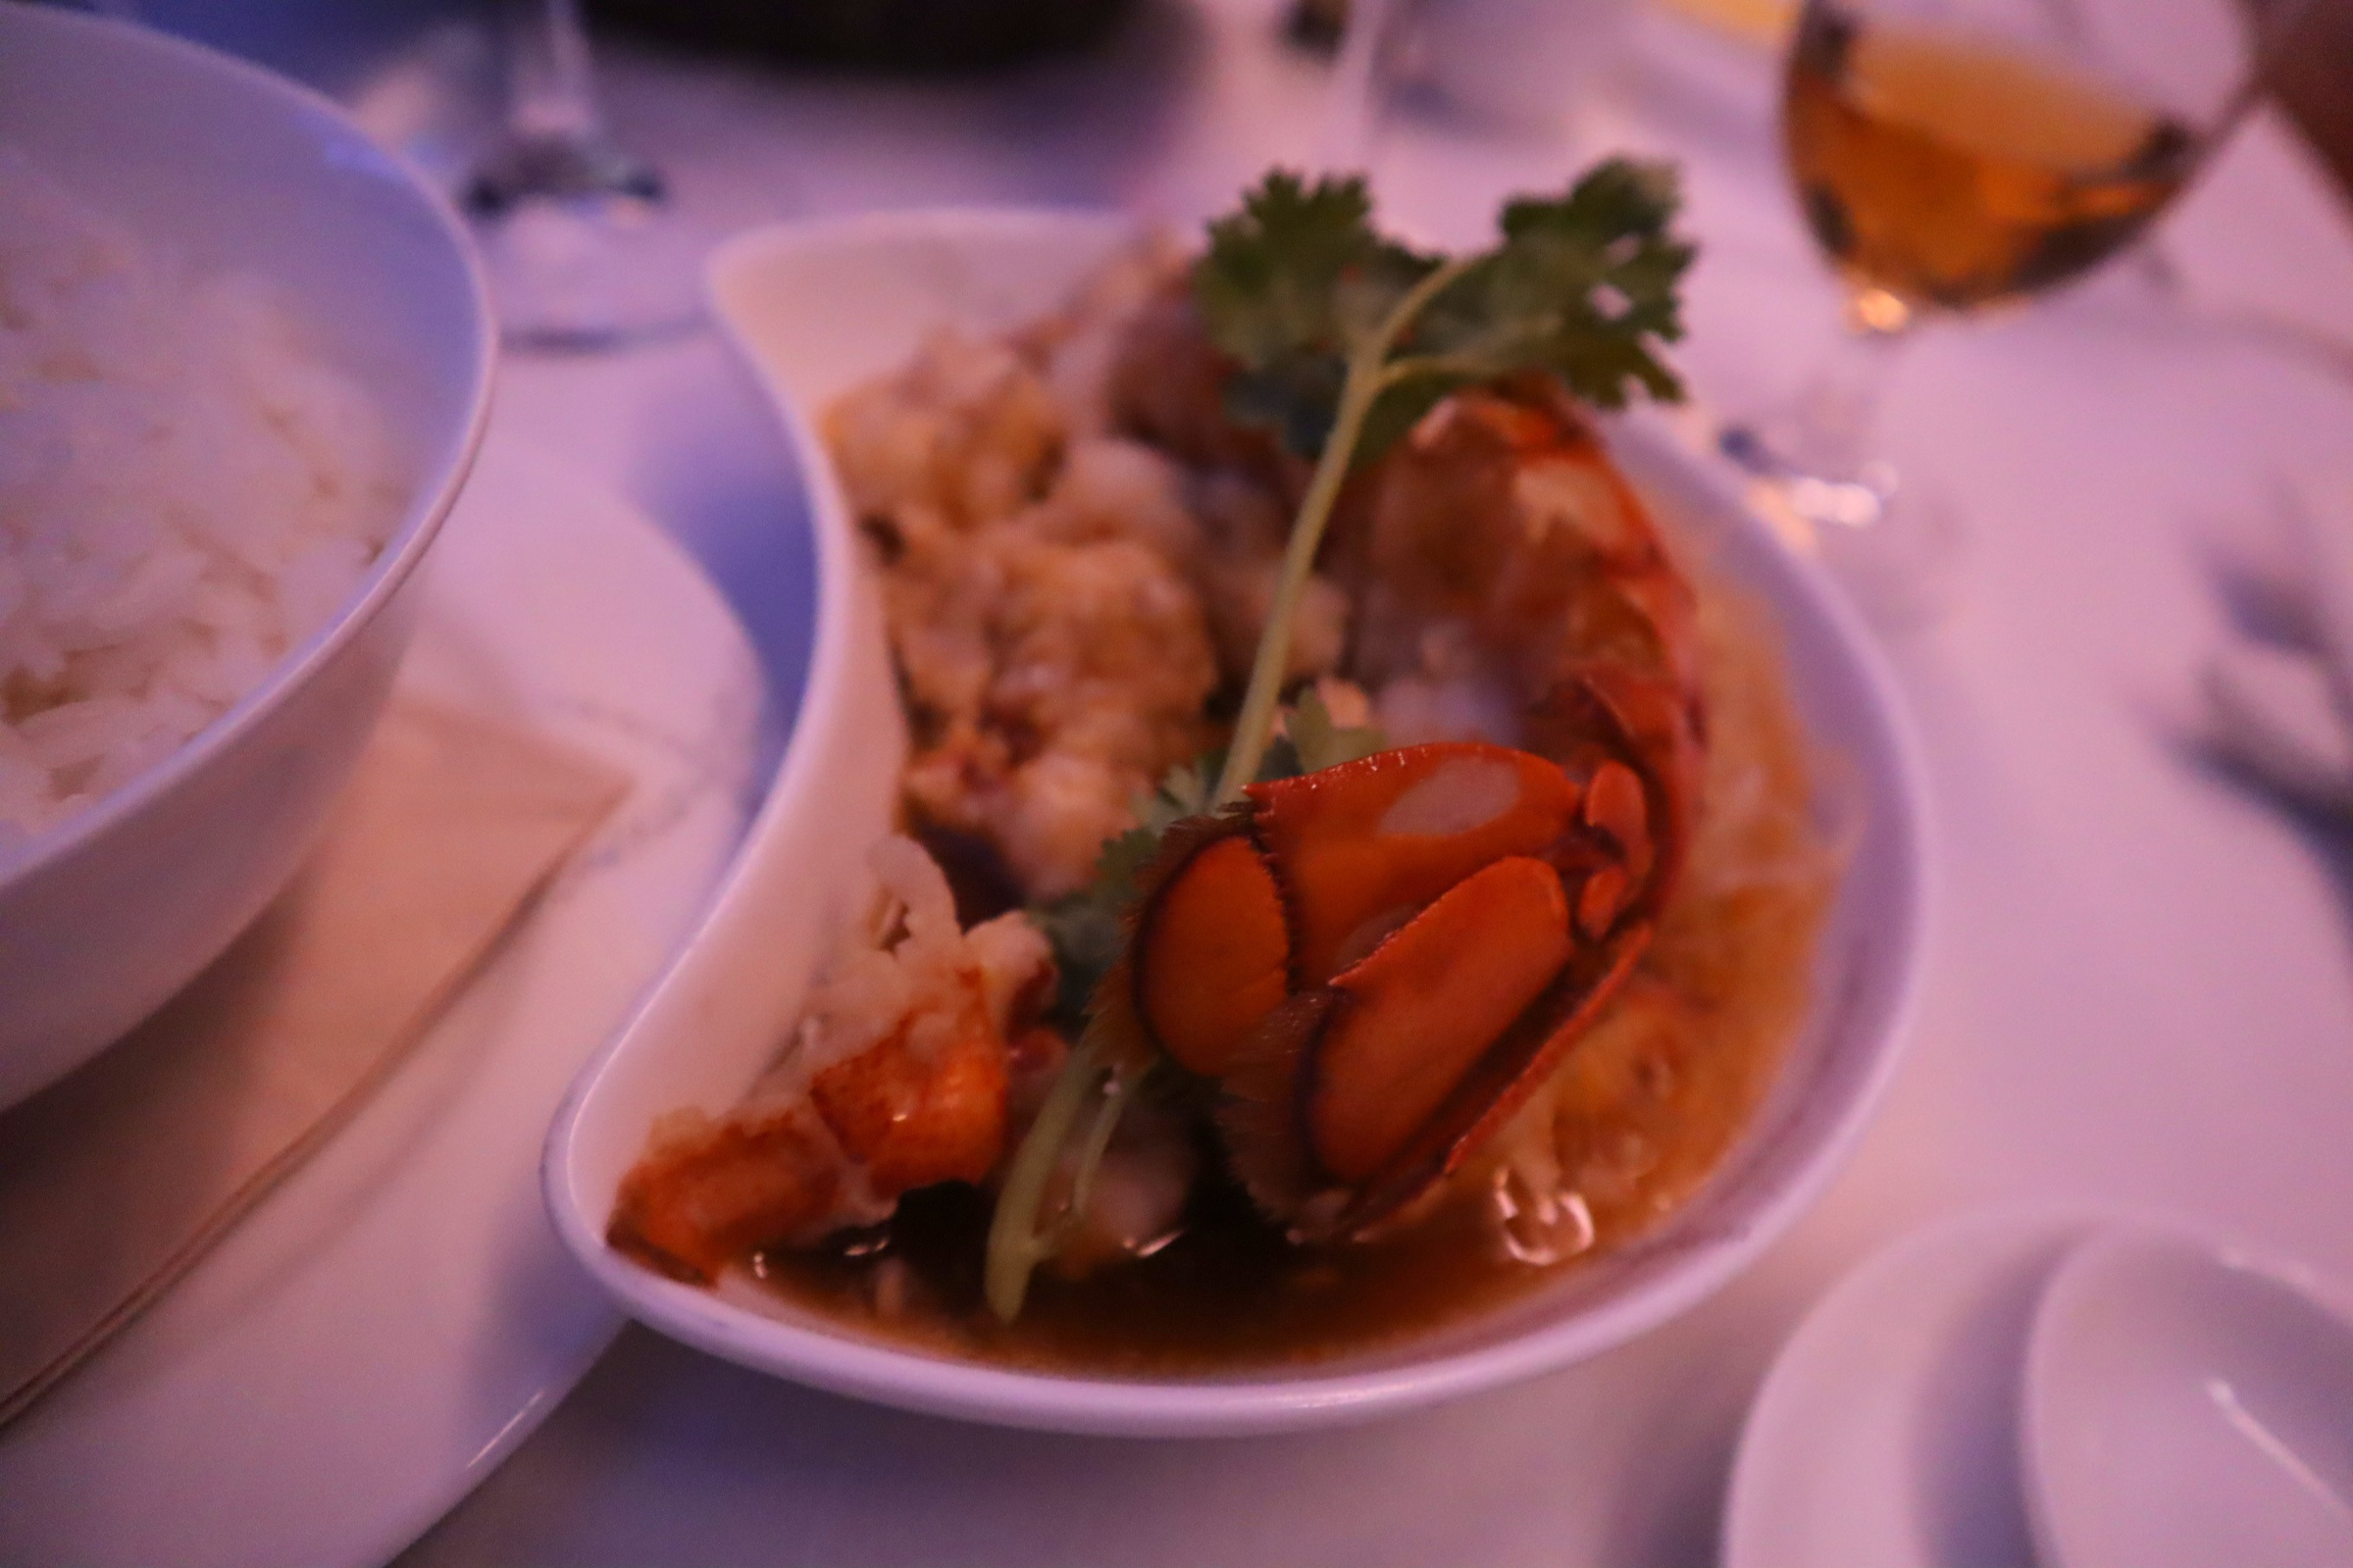 Cathay Pacific First Class – Stir-fried lobster with rice and gai lan